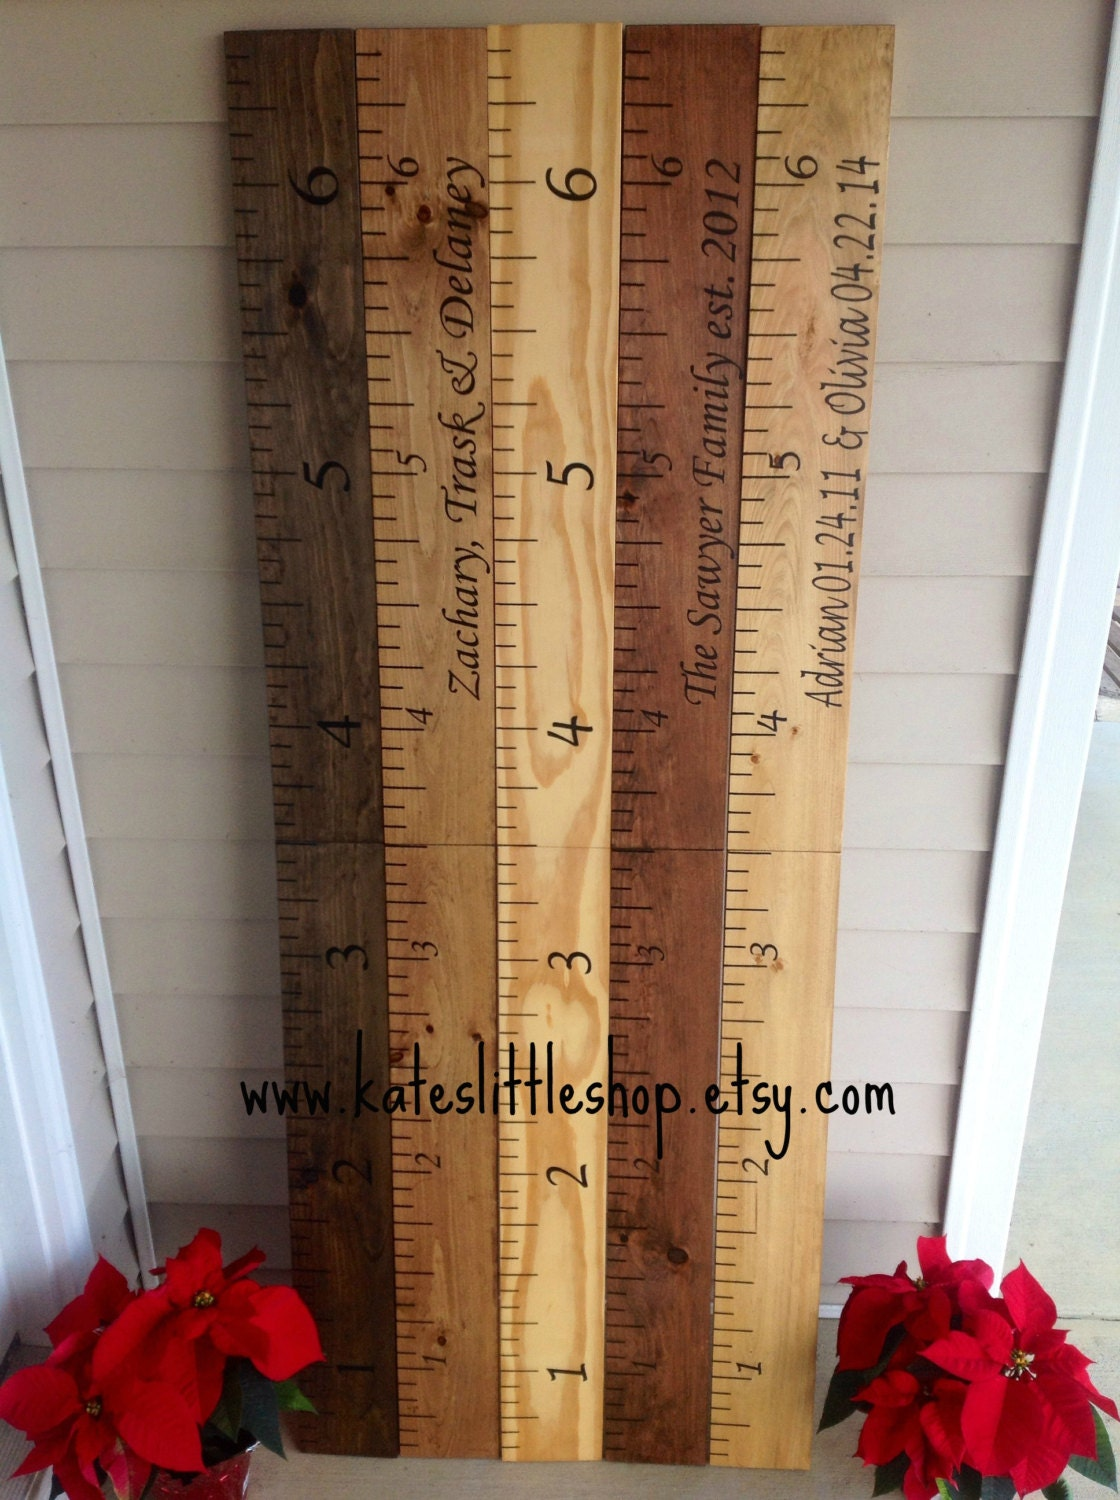 Custom growth charts giant ruler childrens growth chart zoom geenschuldenfo Choice Image